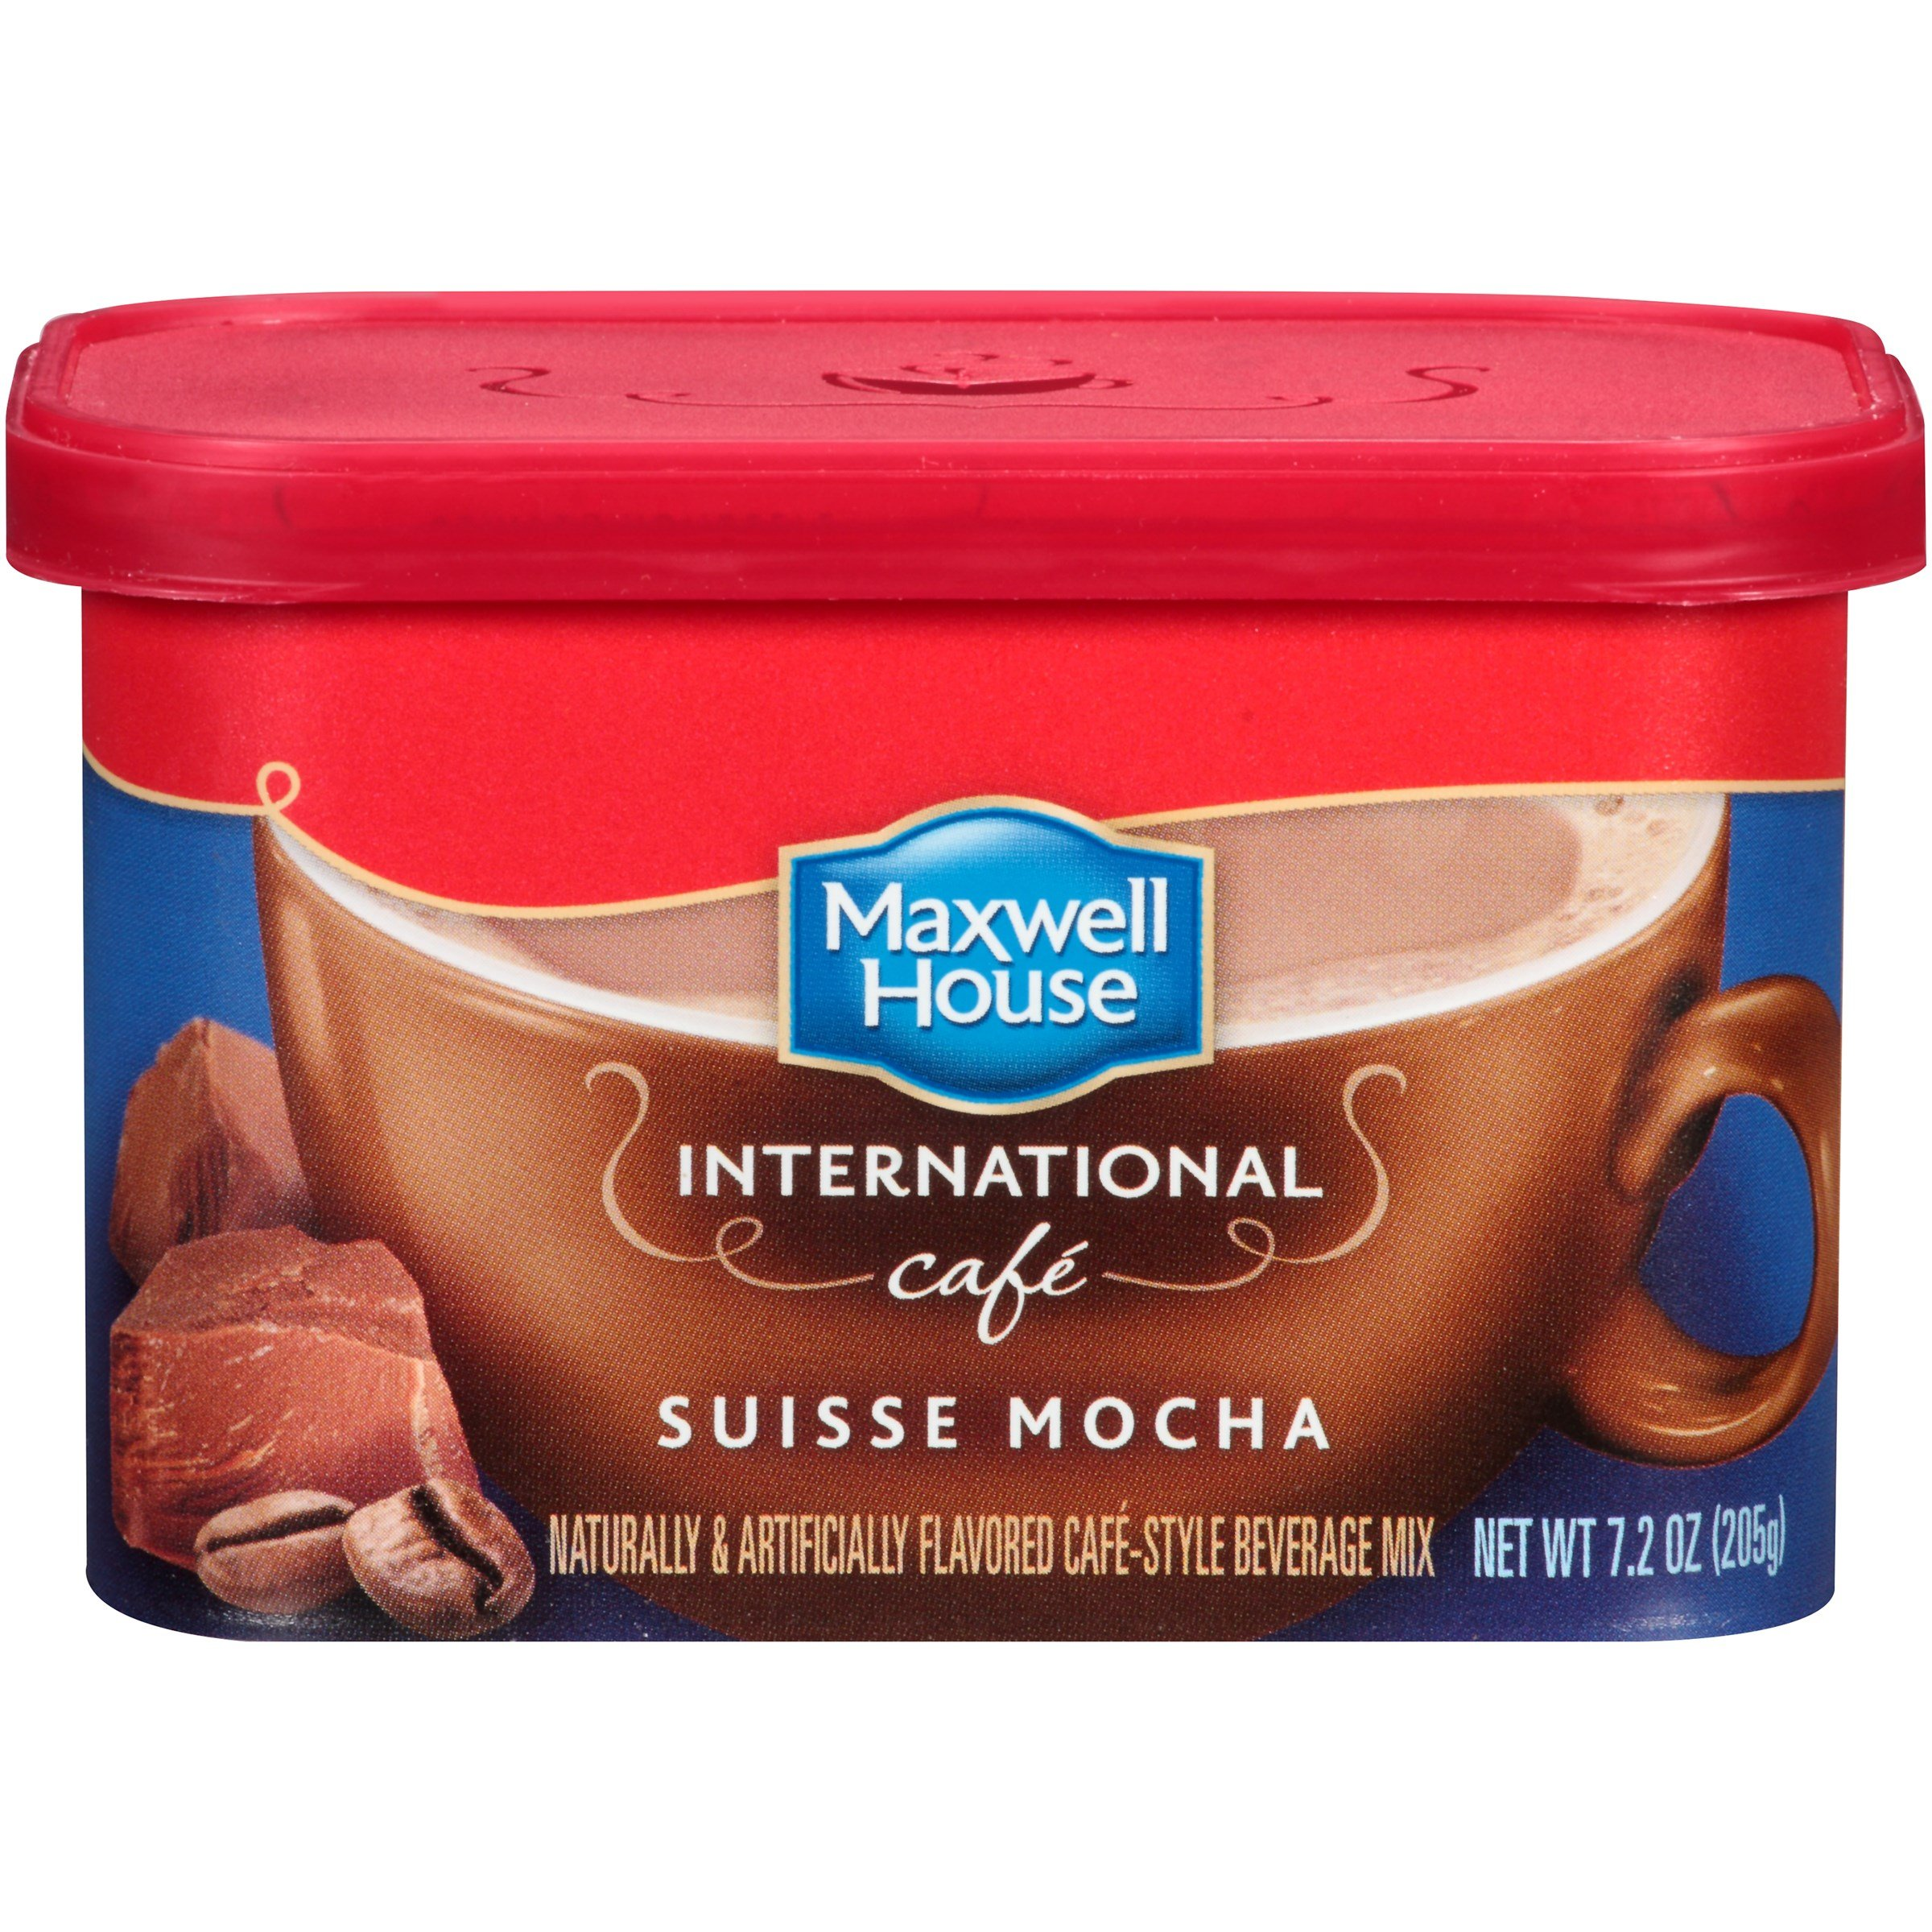 Maxwell House Suisse Mocha 7.2 Oz, Pack of 16